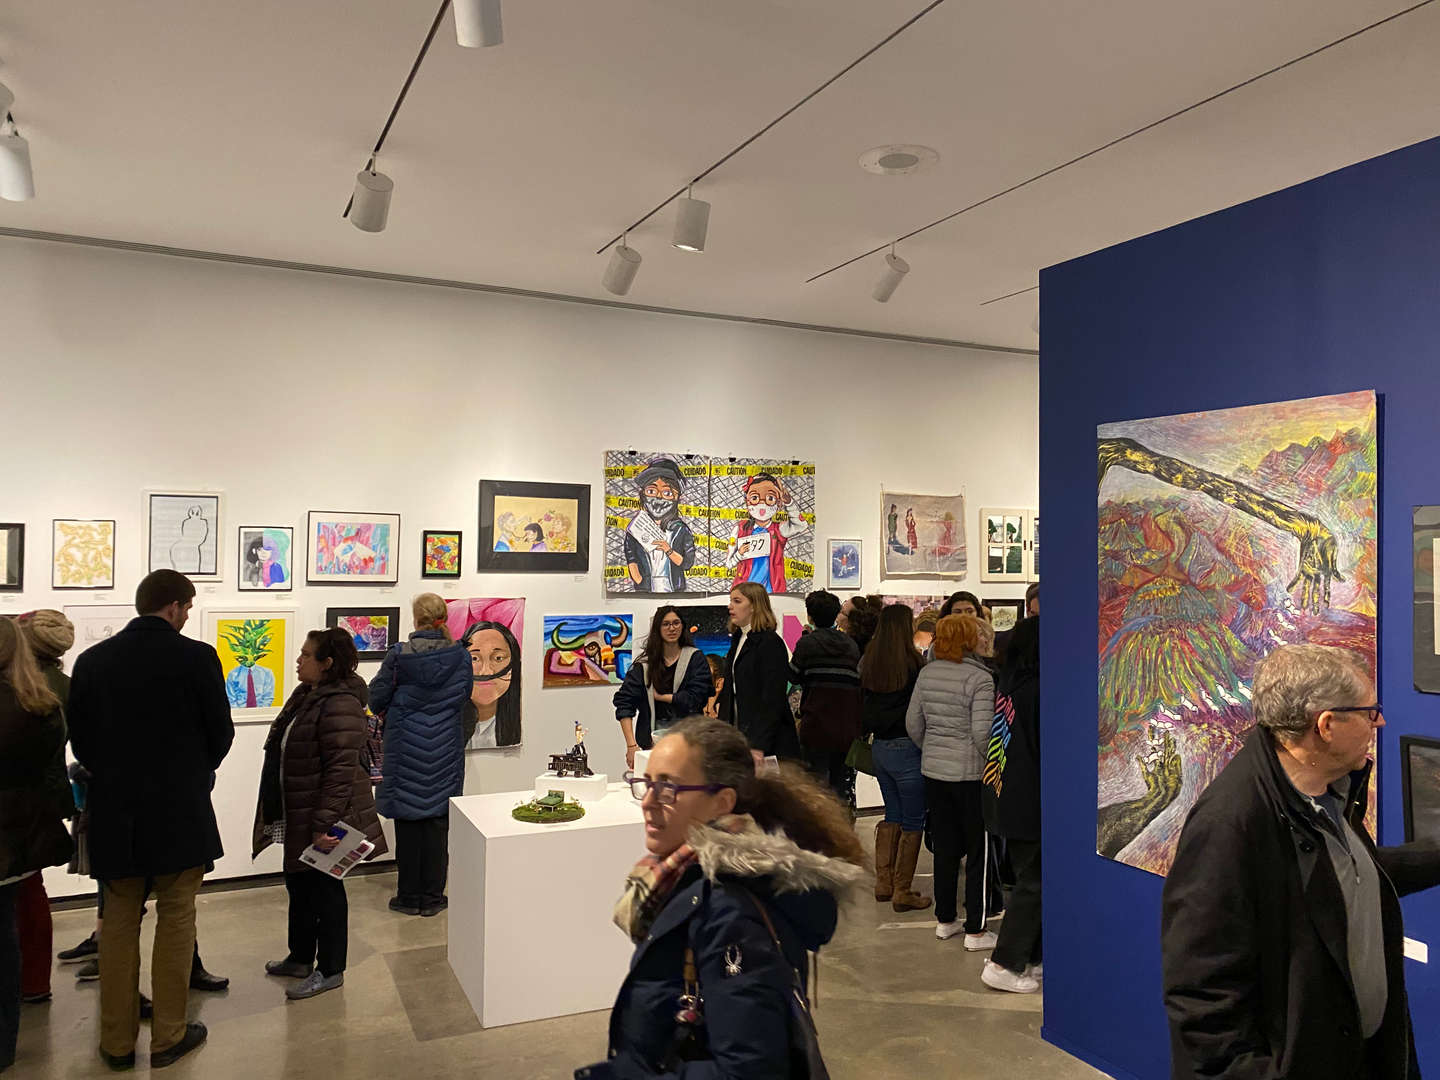 Crowd looks at art in gallery